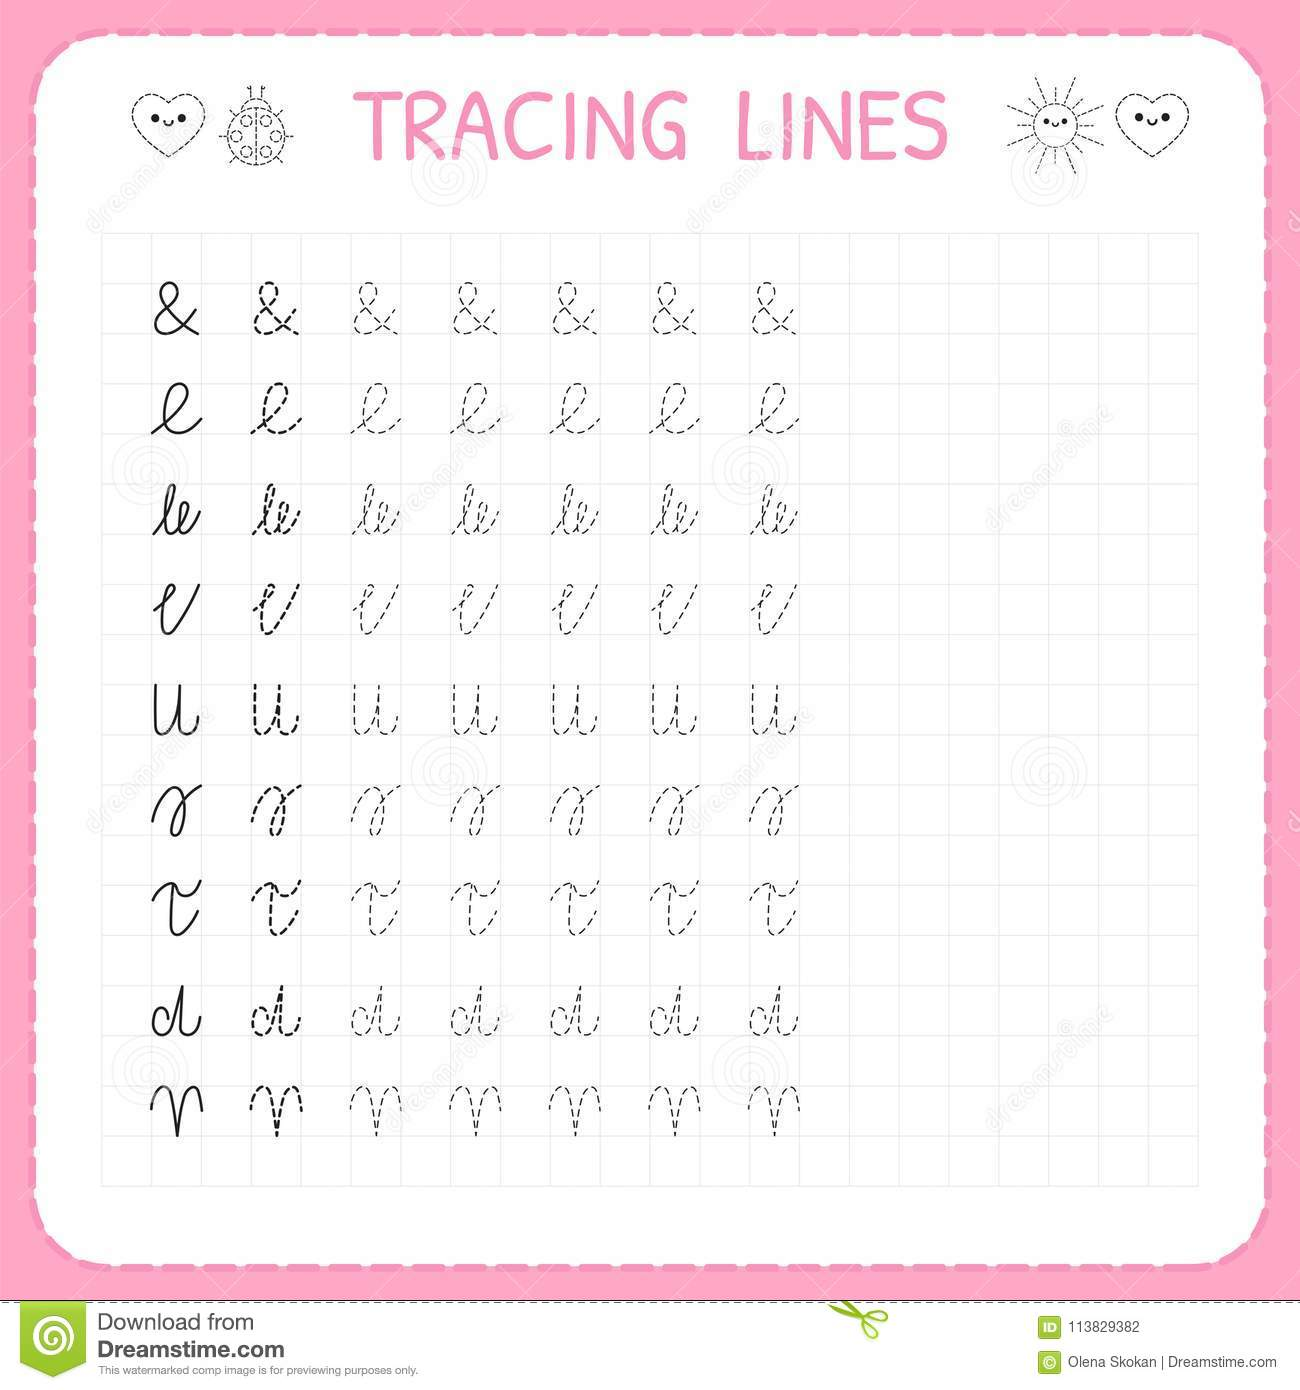 Tracing Lines Basic Writing Worksheet For Kids Working Pages For Children Preschool Or